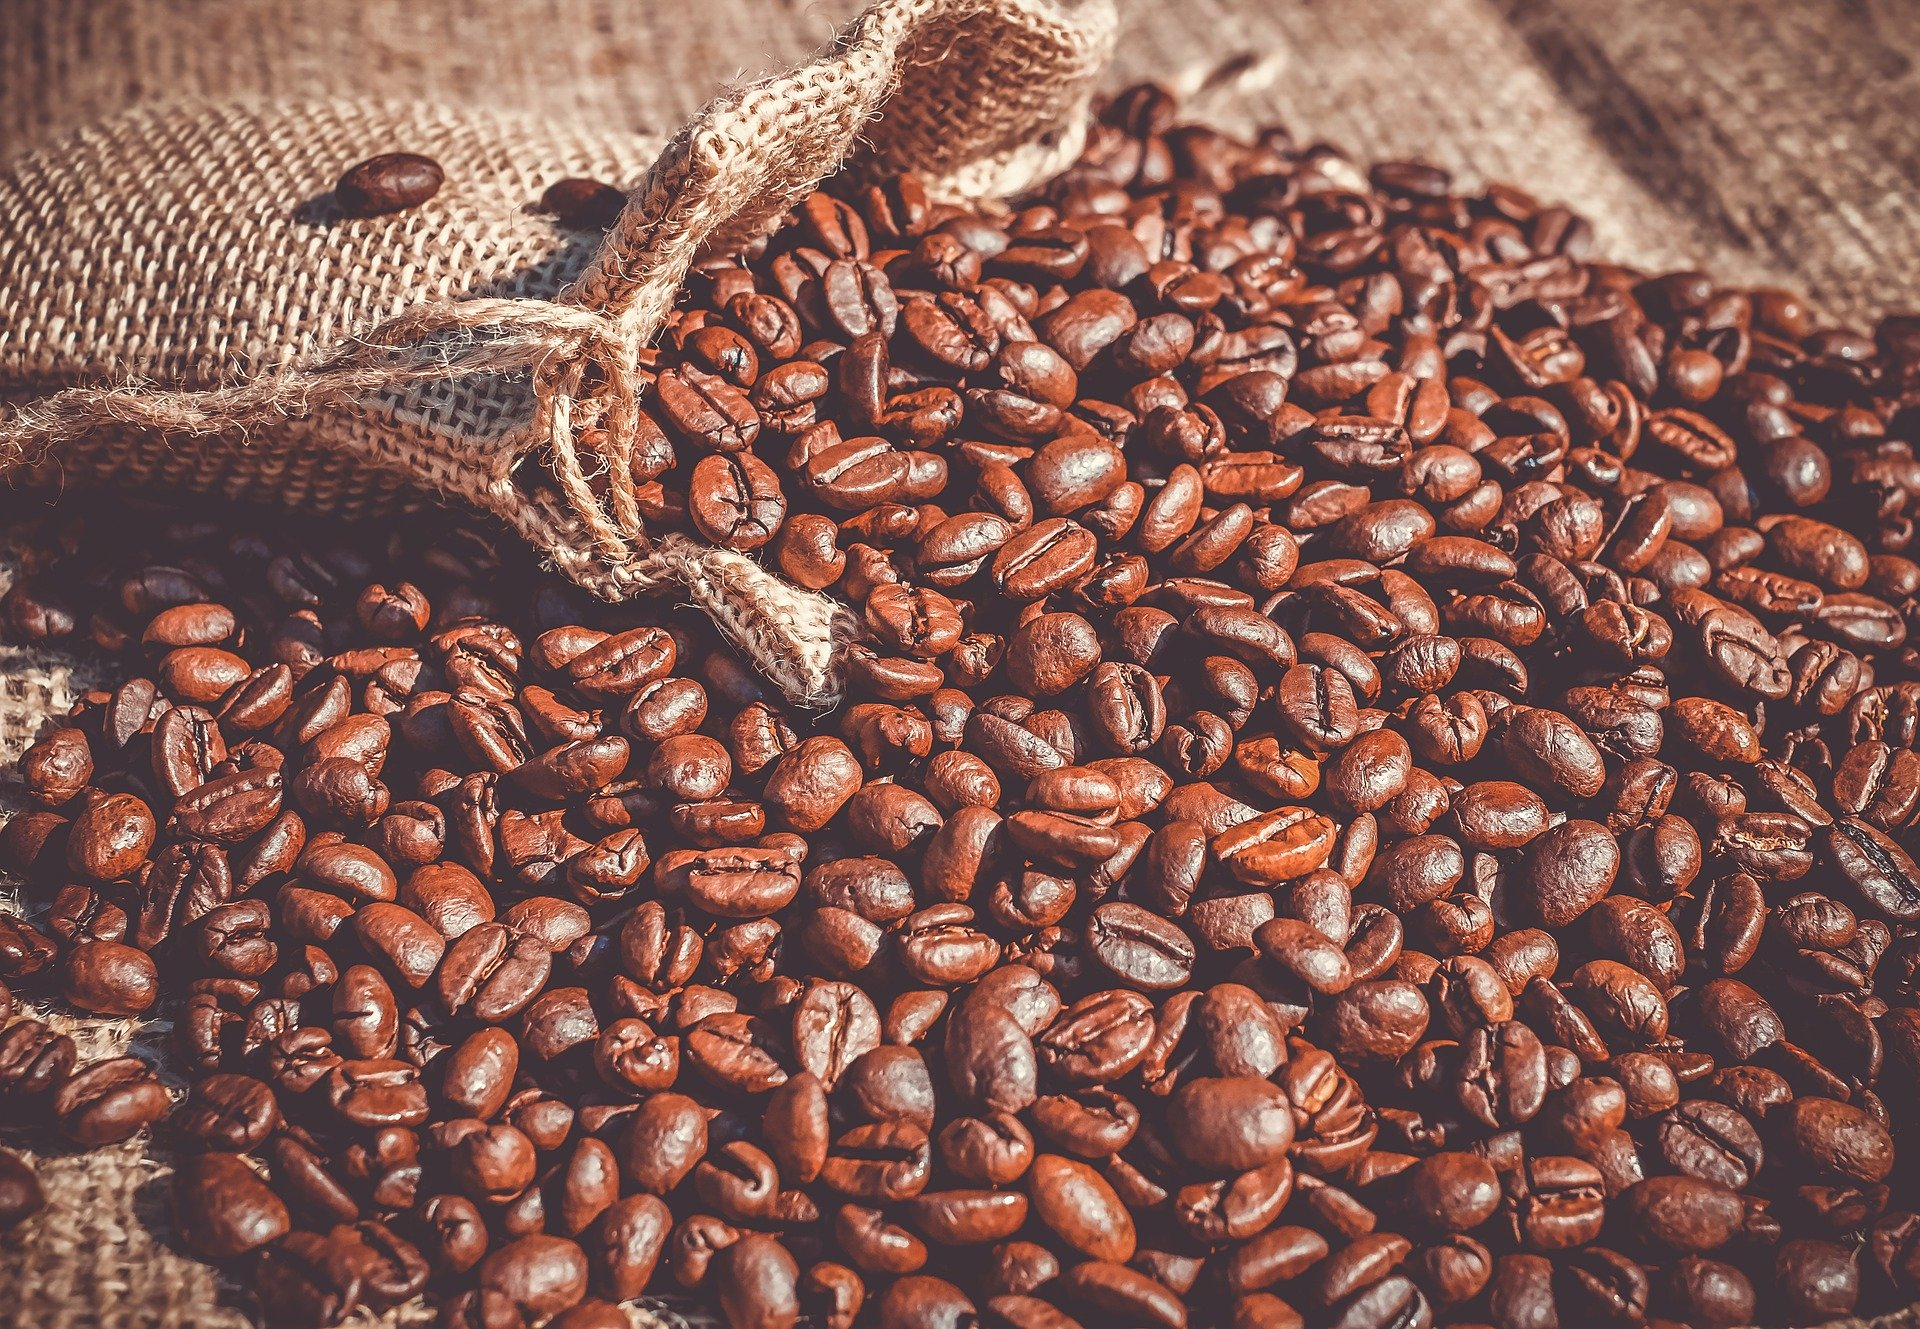 roasted coffee beans scattered